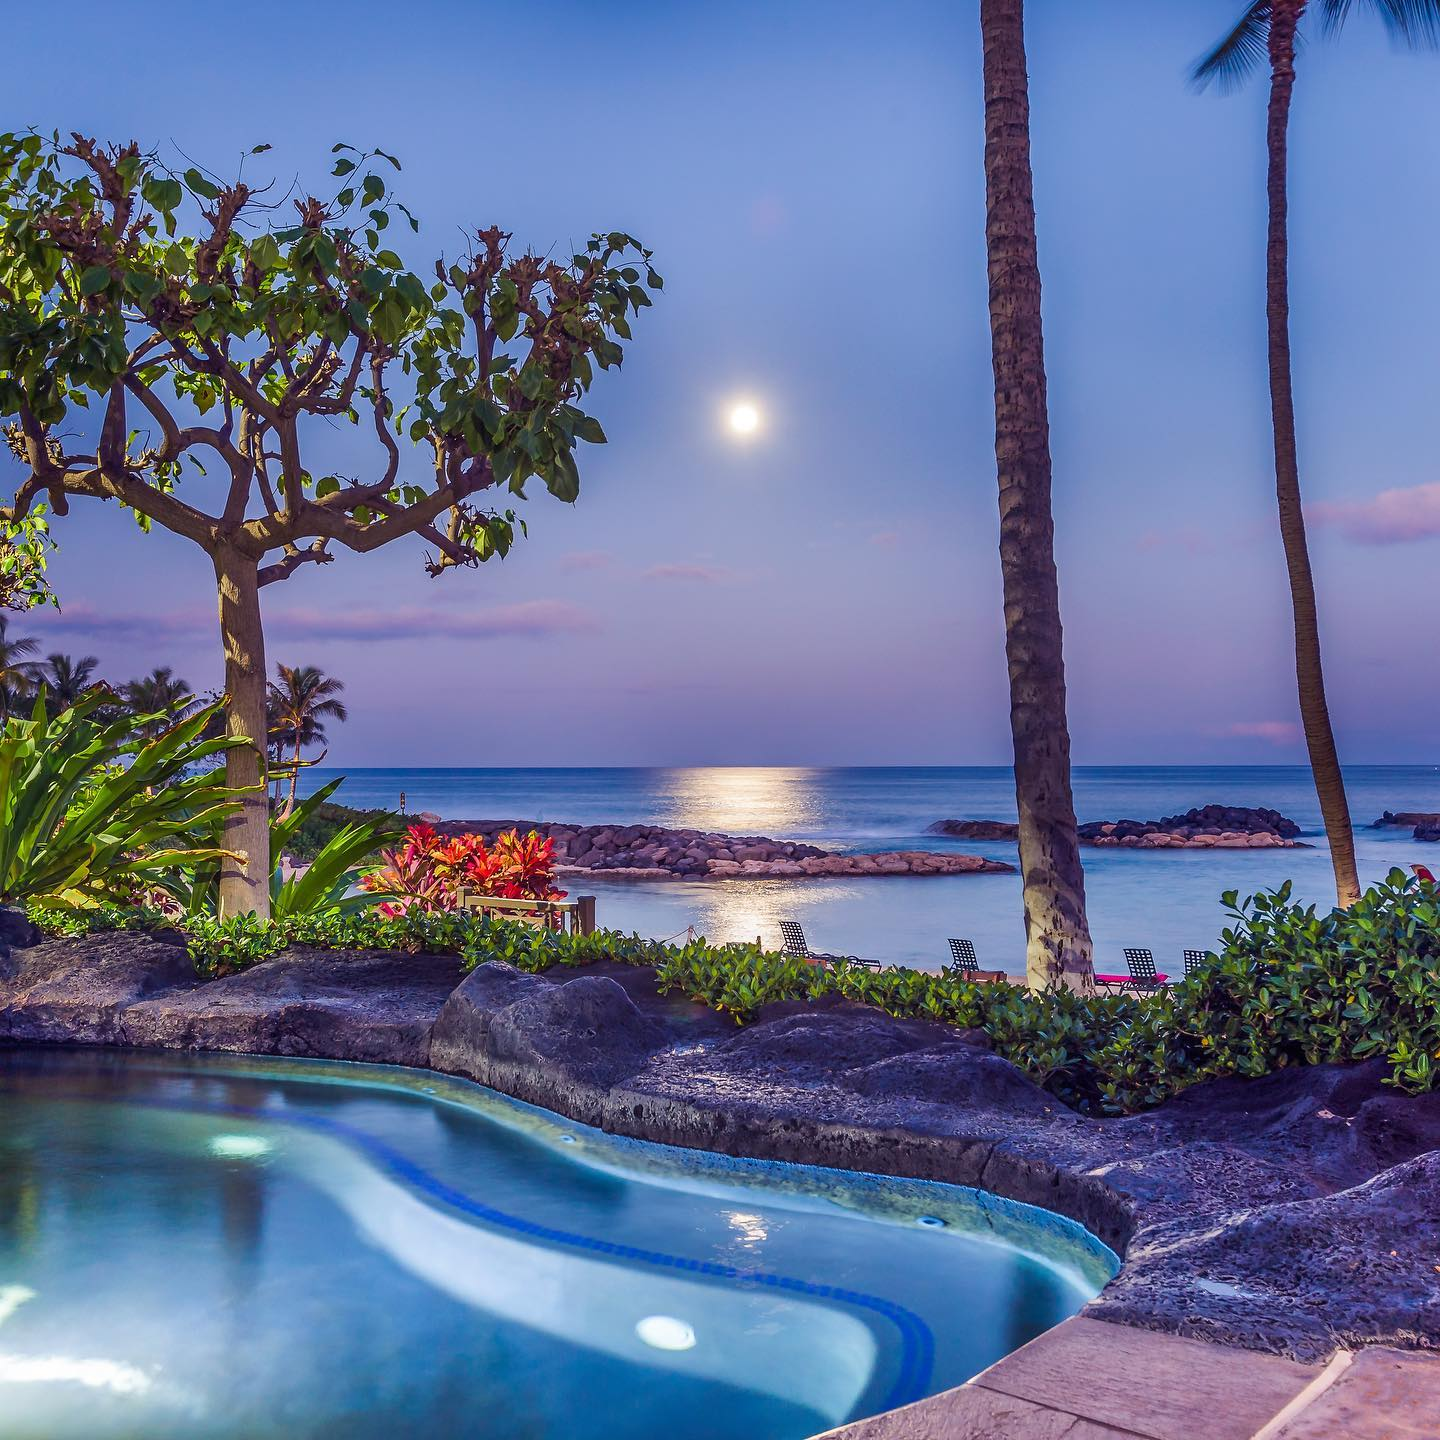 Picture of a Pool with Ocean Views in one of our Hawaii Vacation Rentals in Oahu.